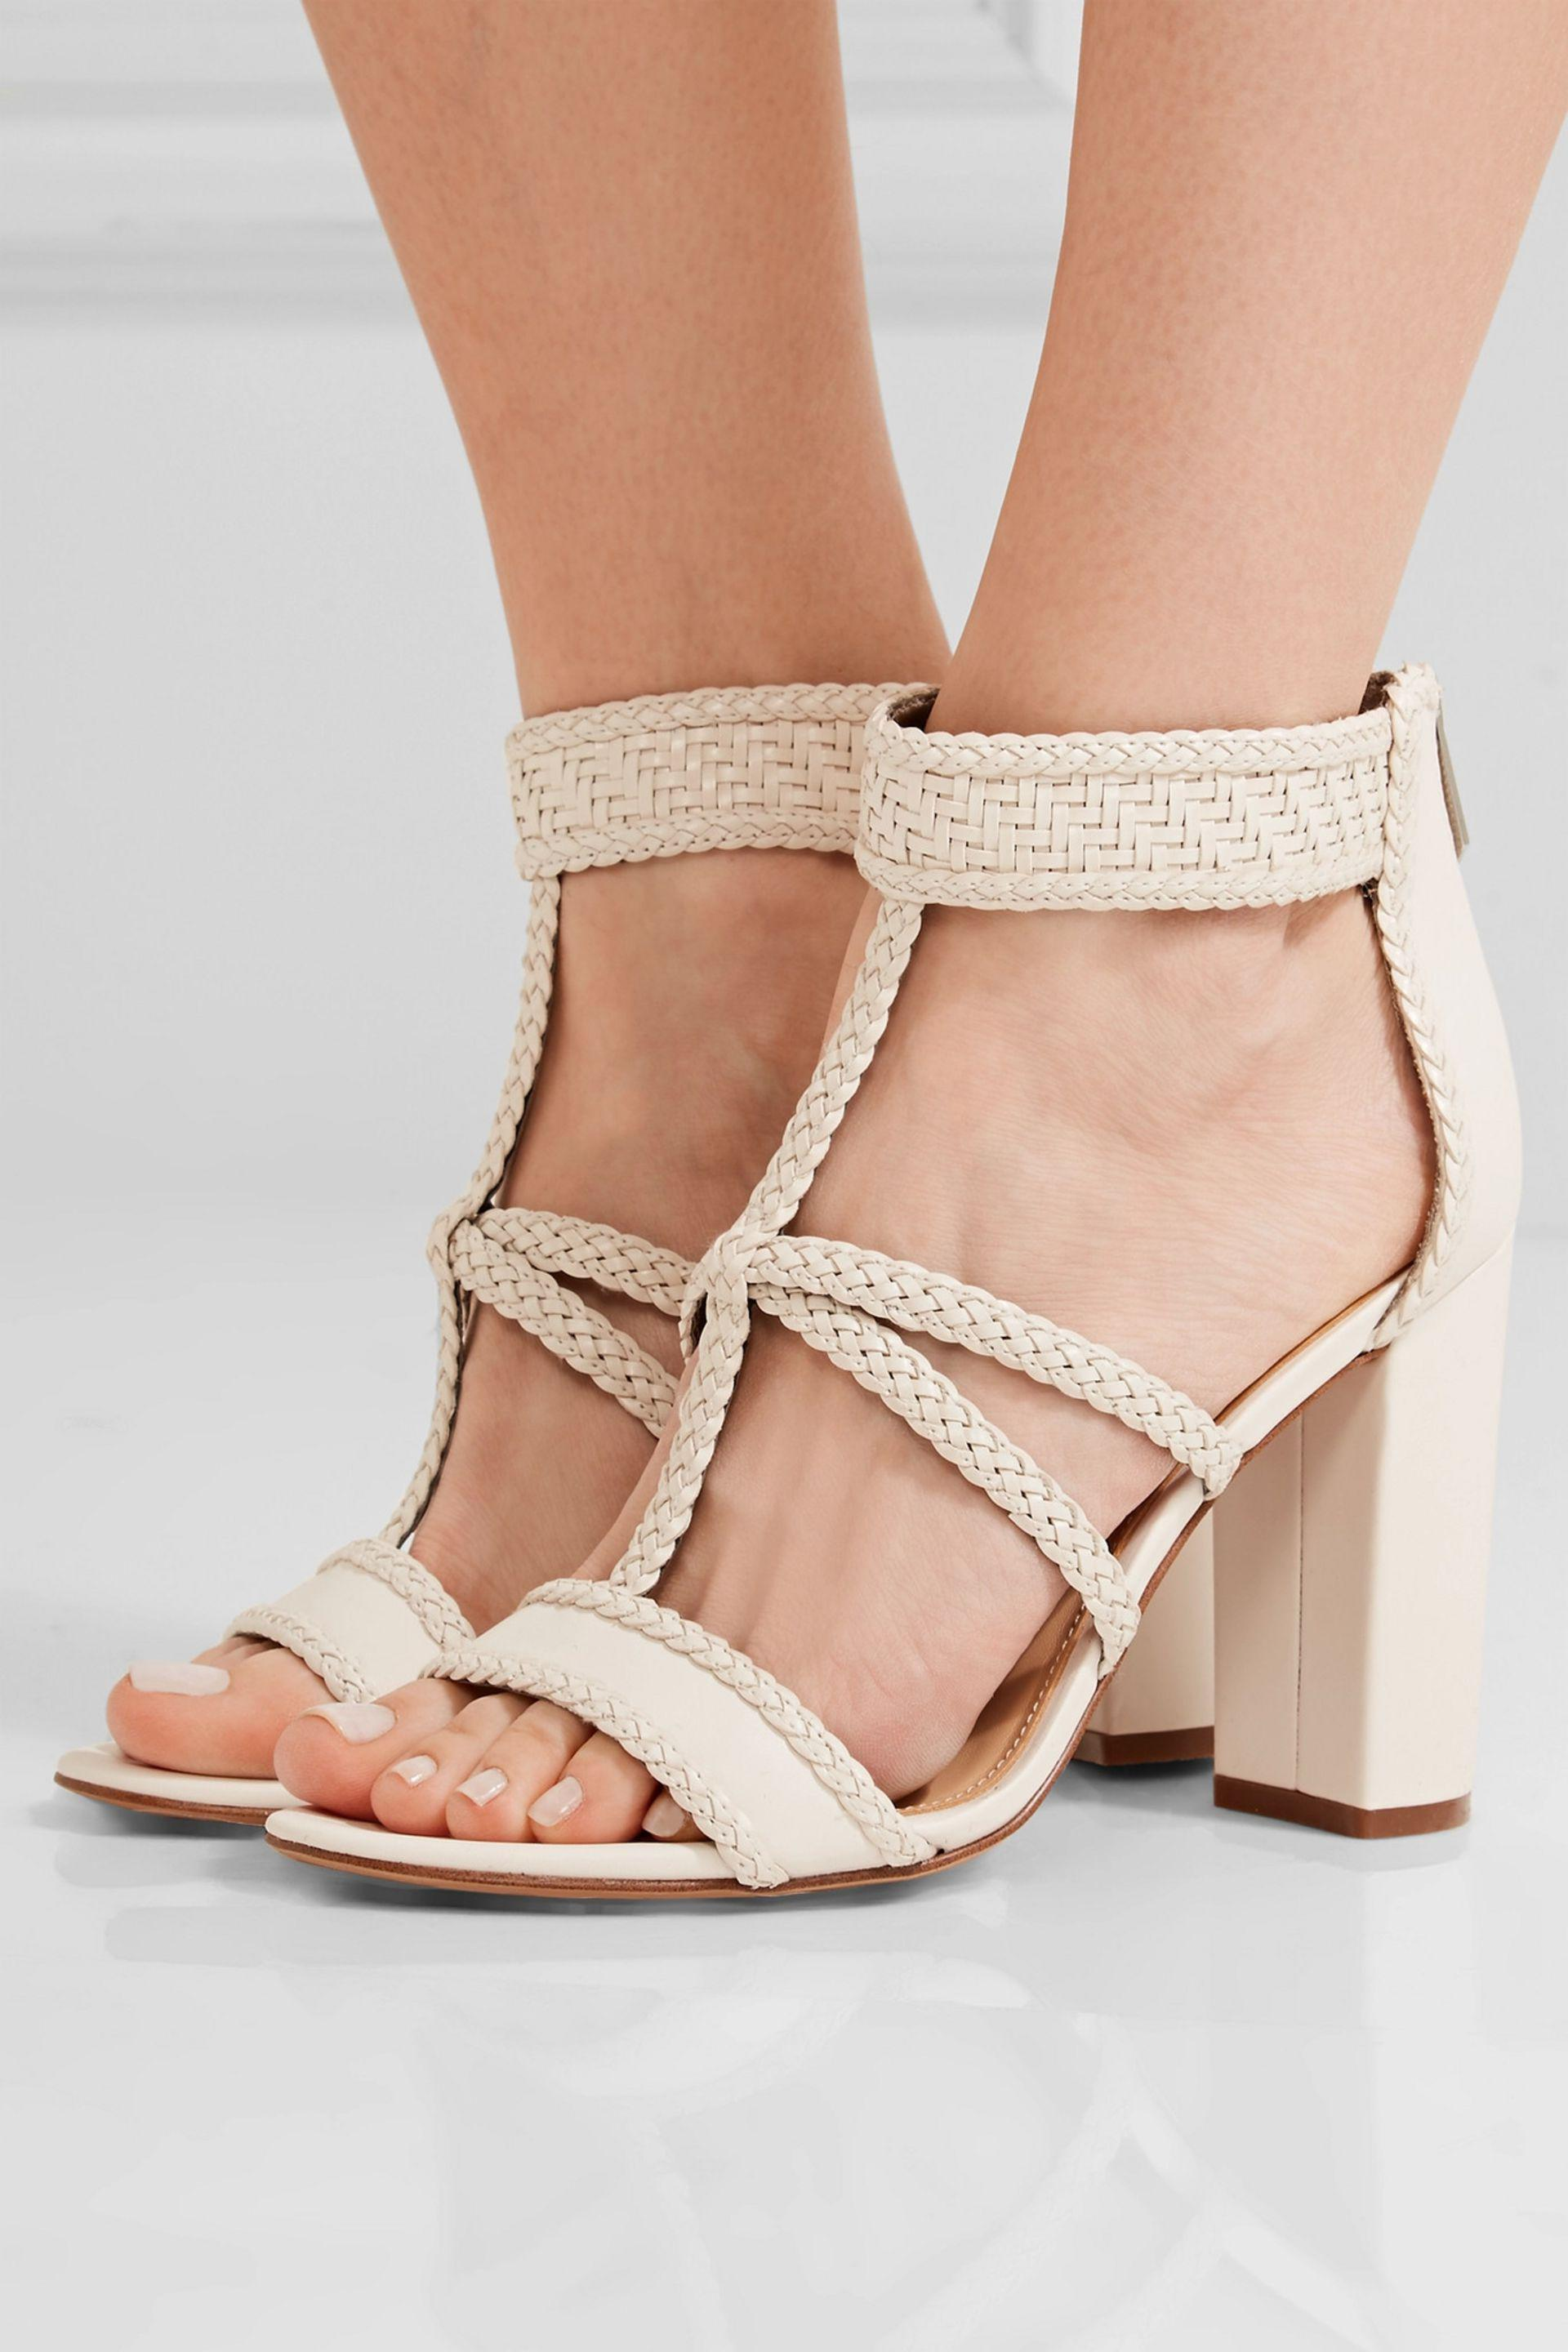 514163a492ee59 Lyst - Sam Edelman Yordana Woven Leather Sandals in White